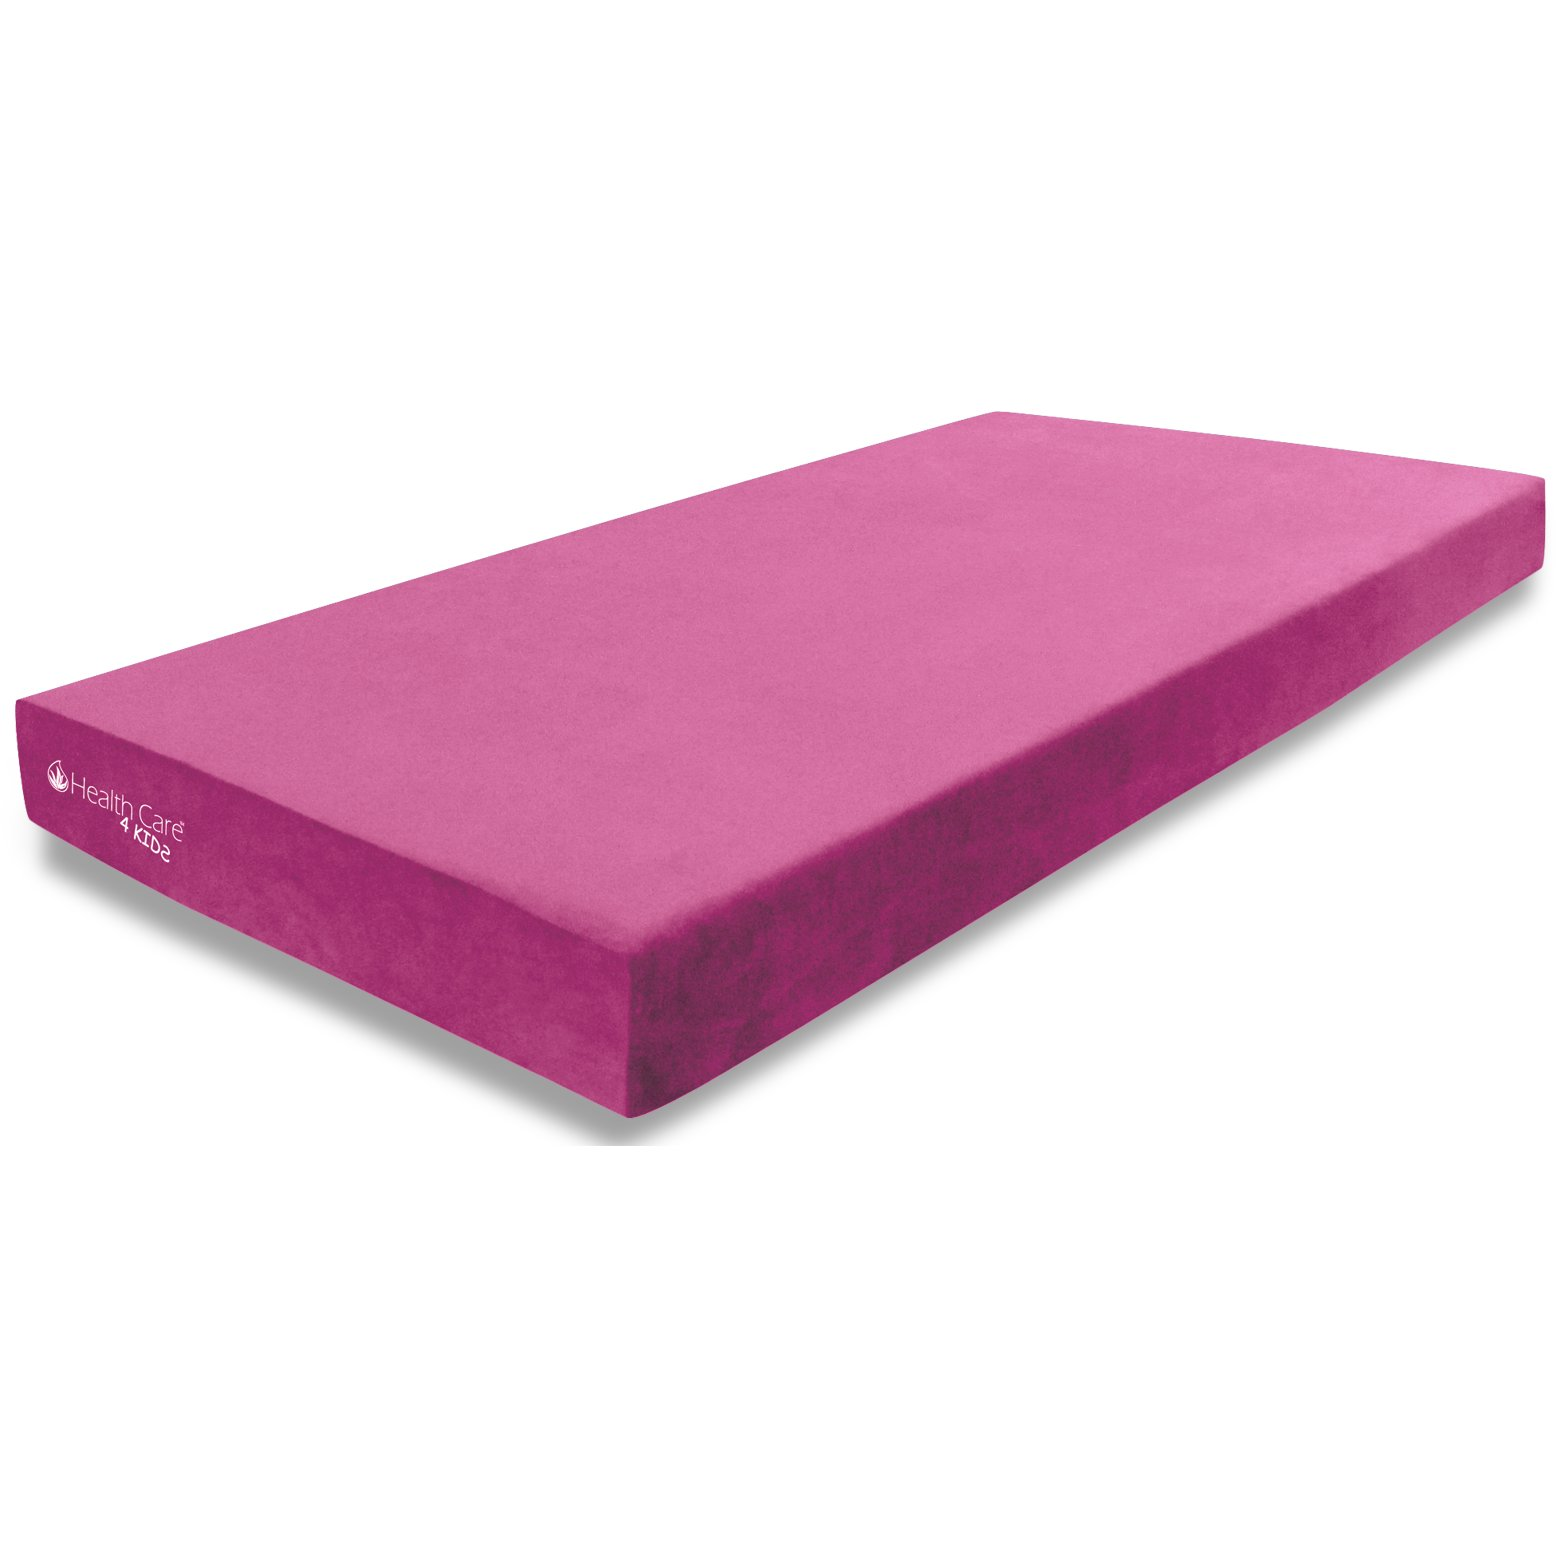 Healthcare Pink Memory Foam Twin Mattress And Pillow 4 Kids Dream